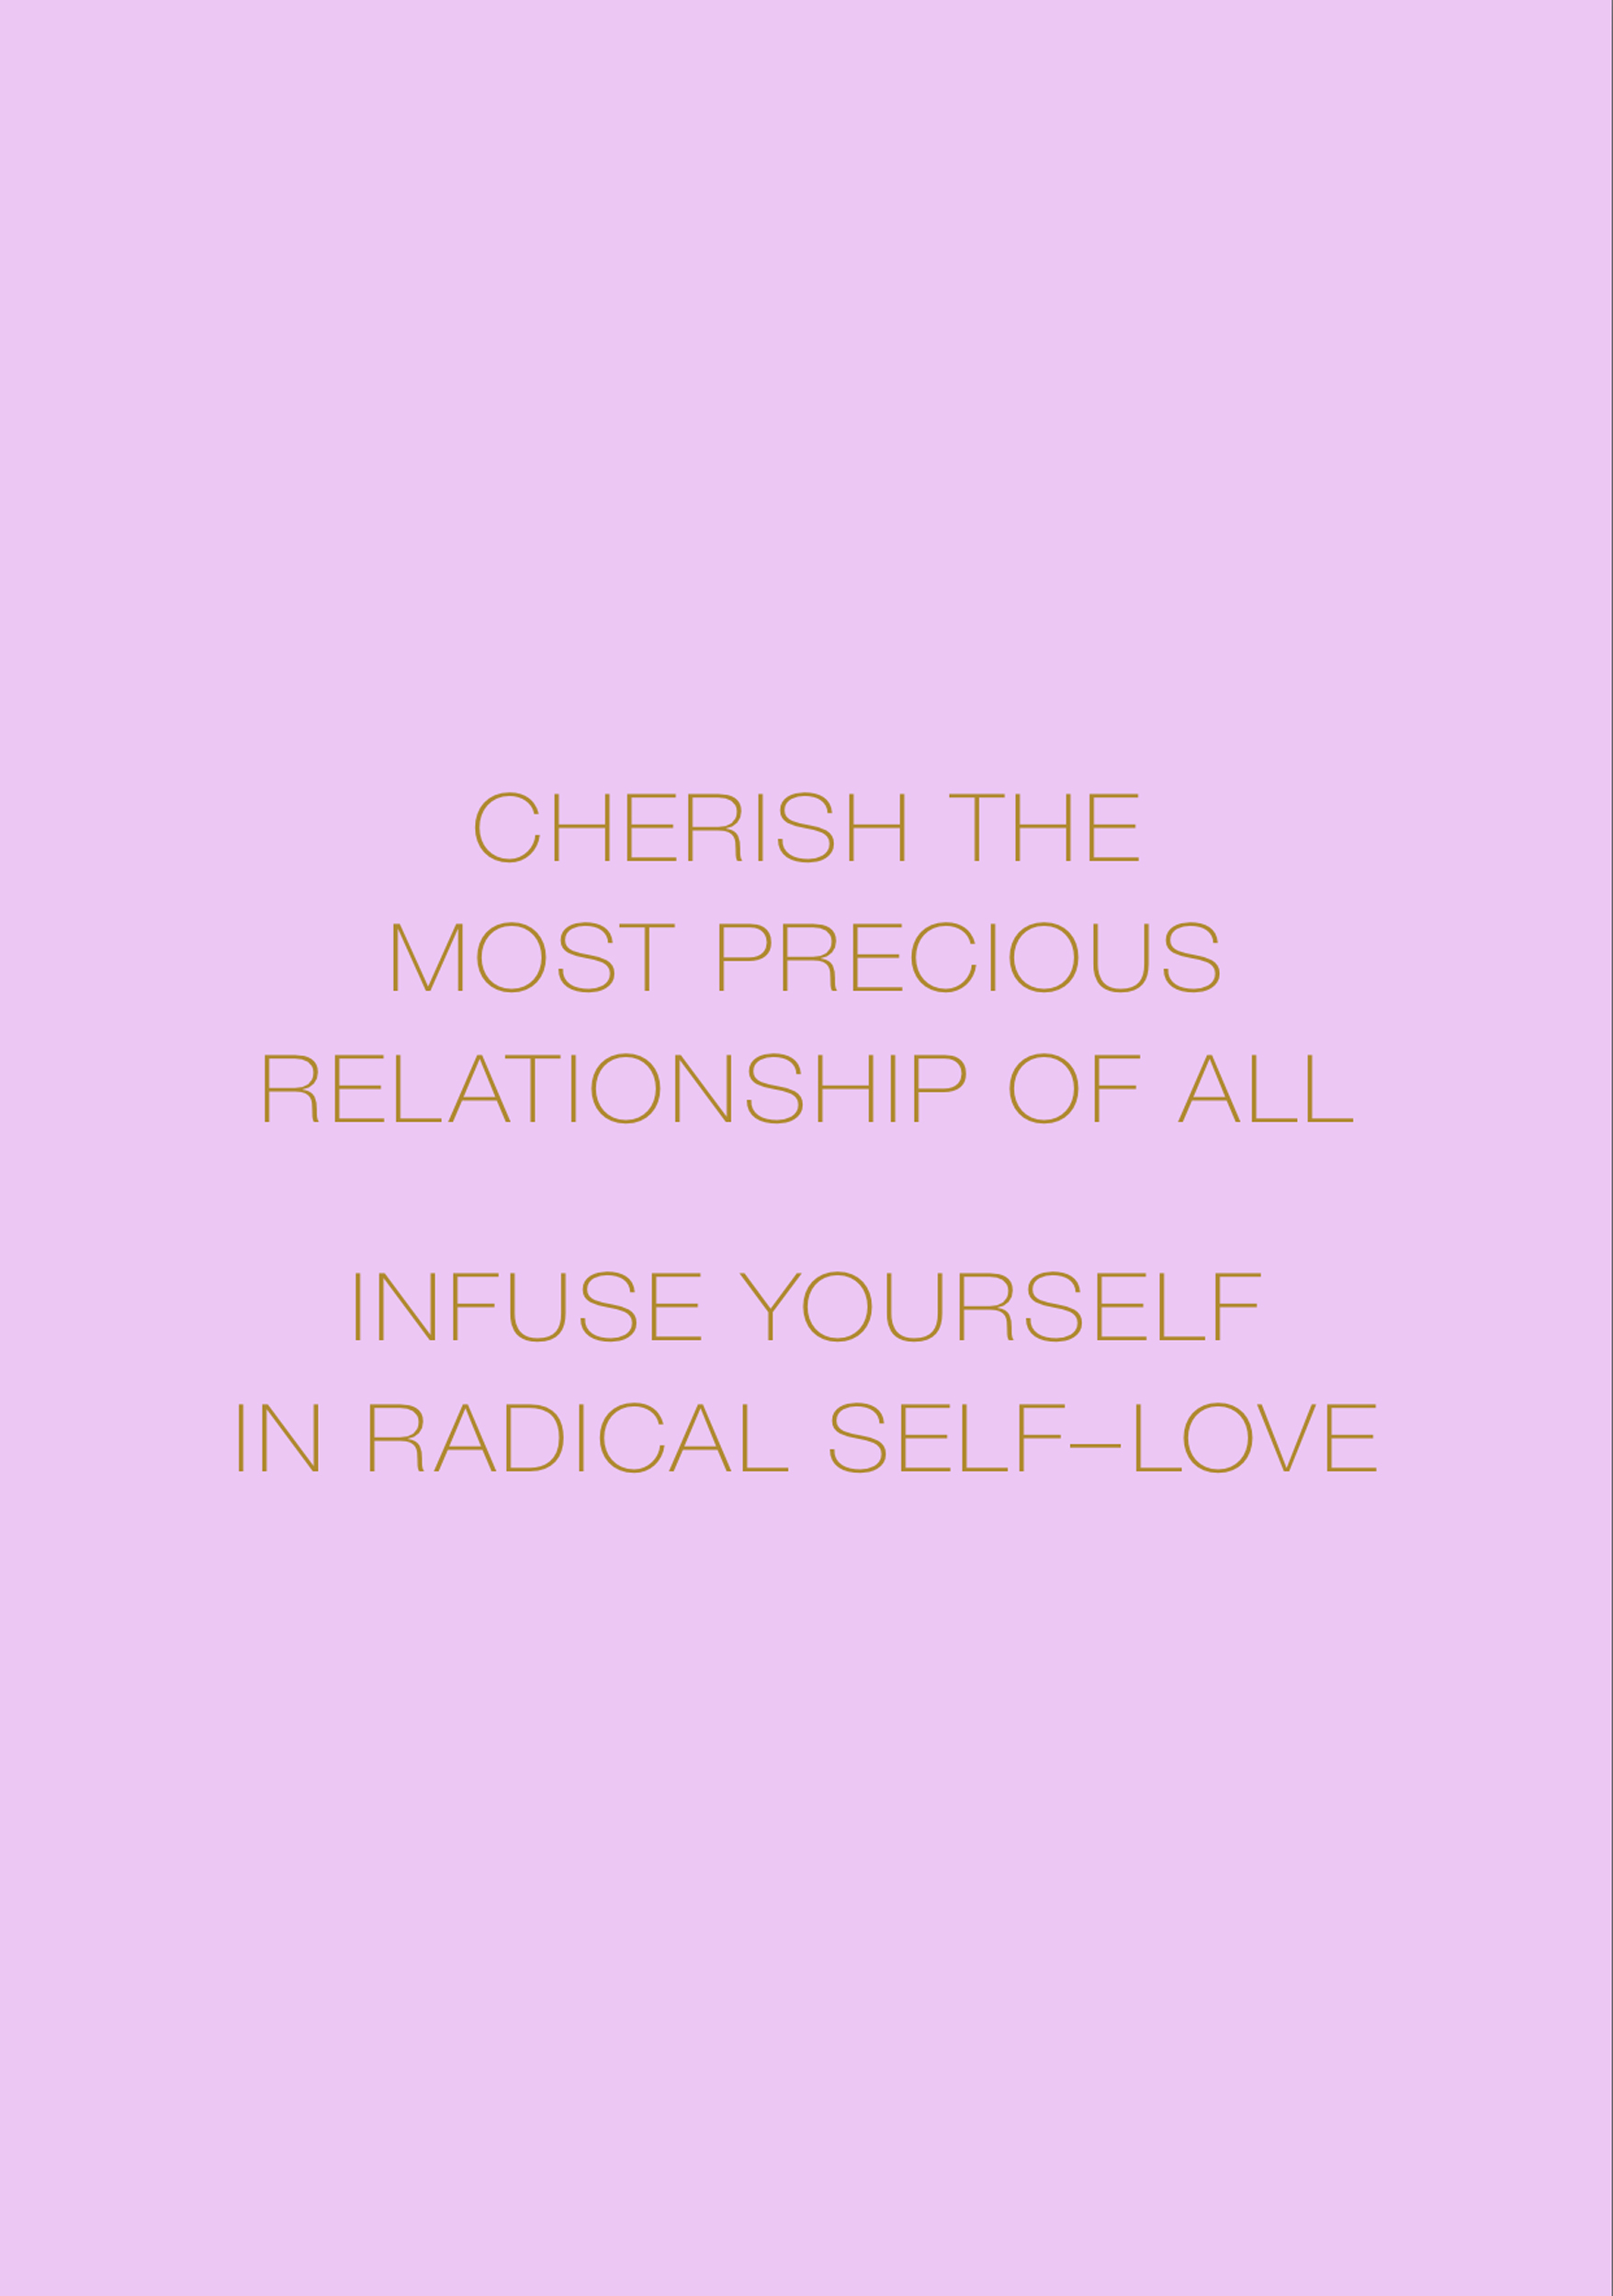 Self Love Mantra: Cherish the Most Precious Relationship of All,Infuse Yourself in Radical Self-Love